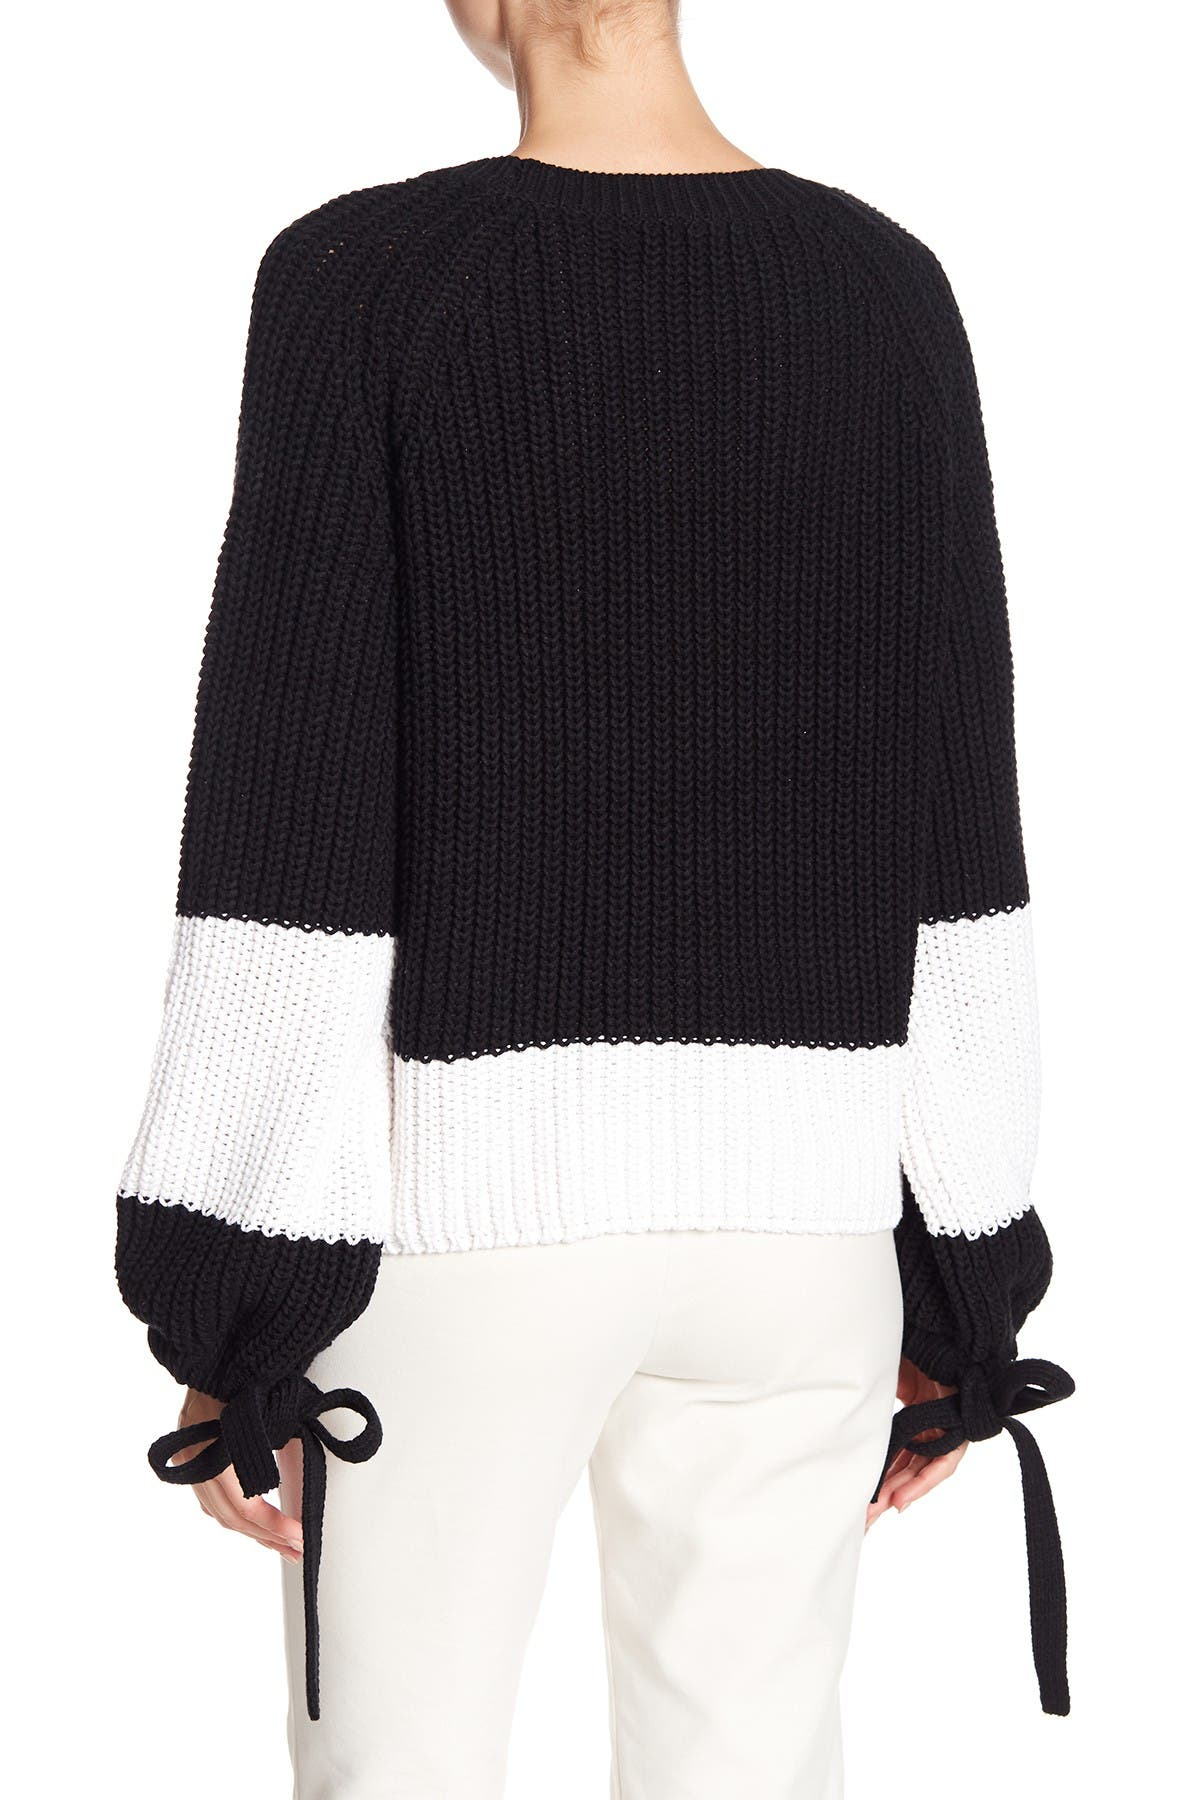 Image of 360 Cashmere Lilah Colorblock Stripe Sweater